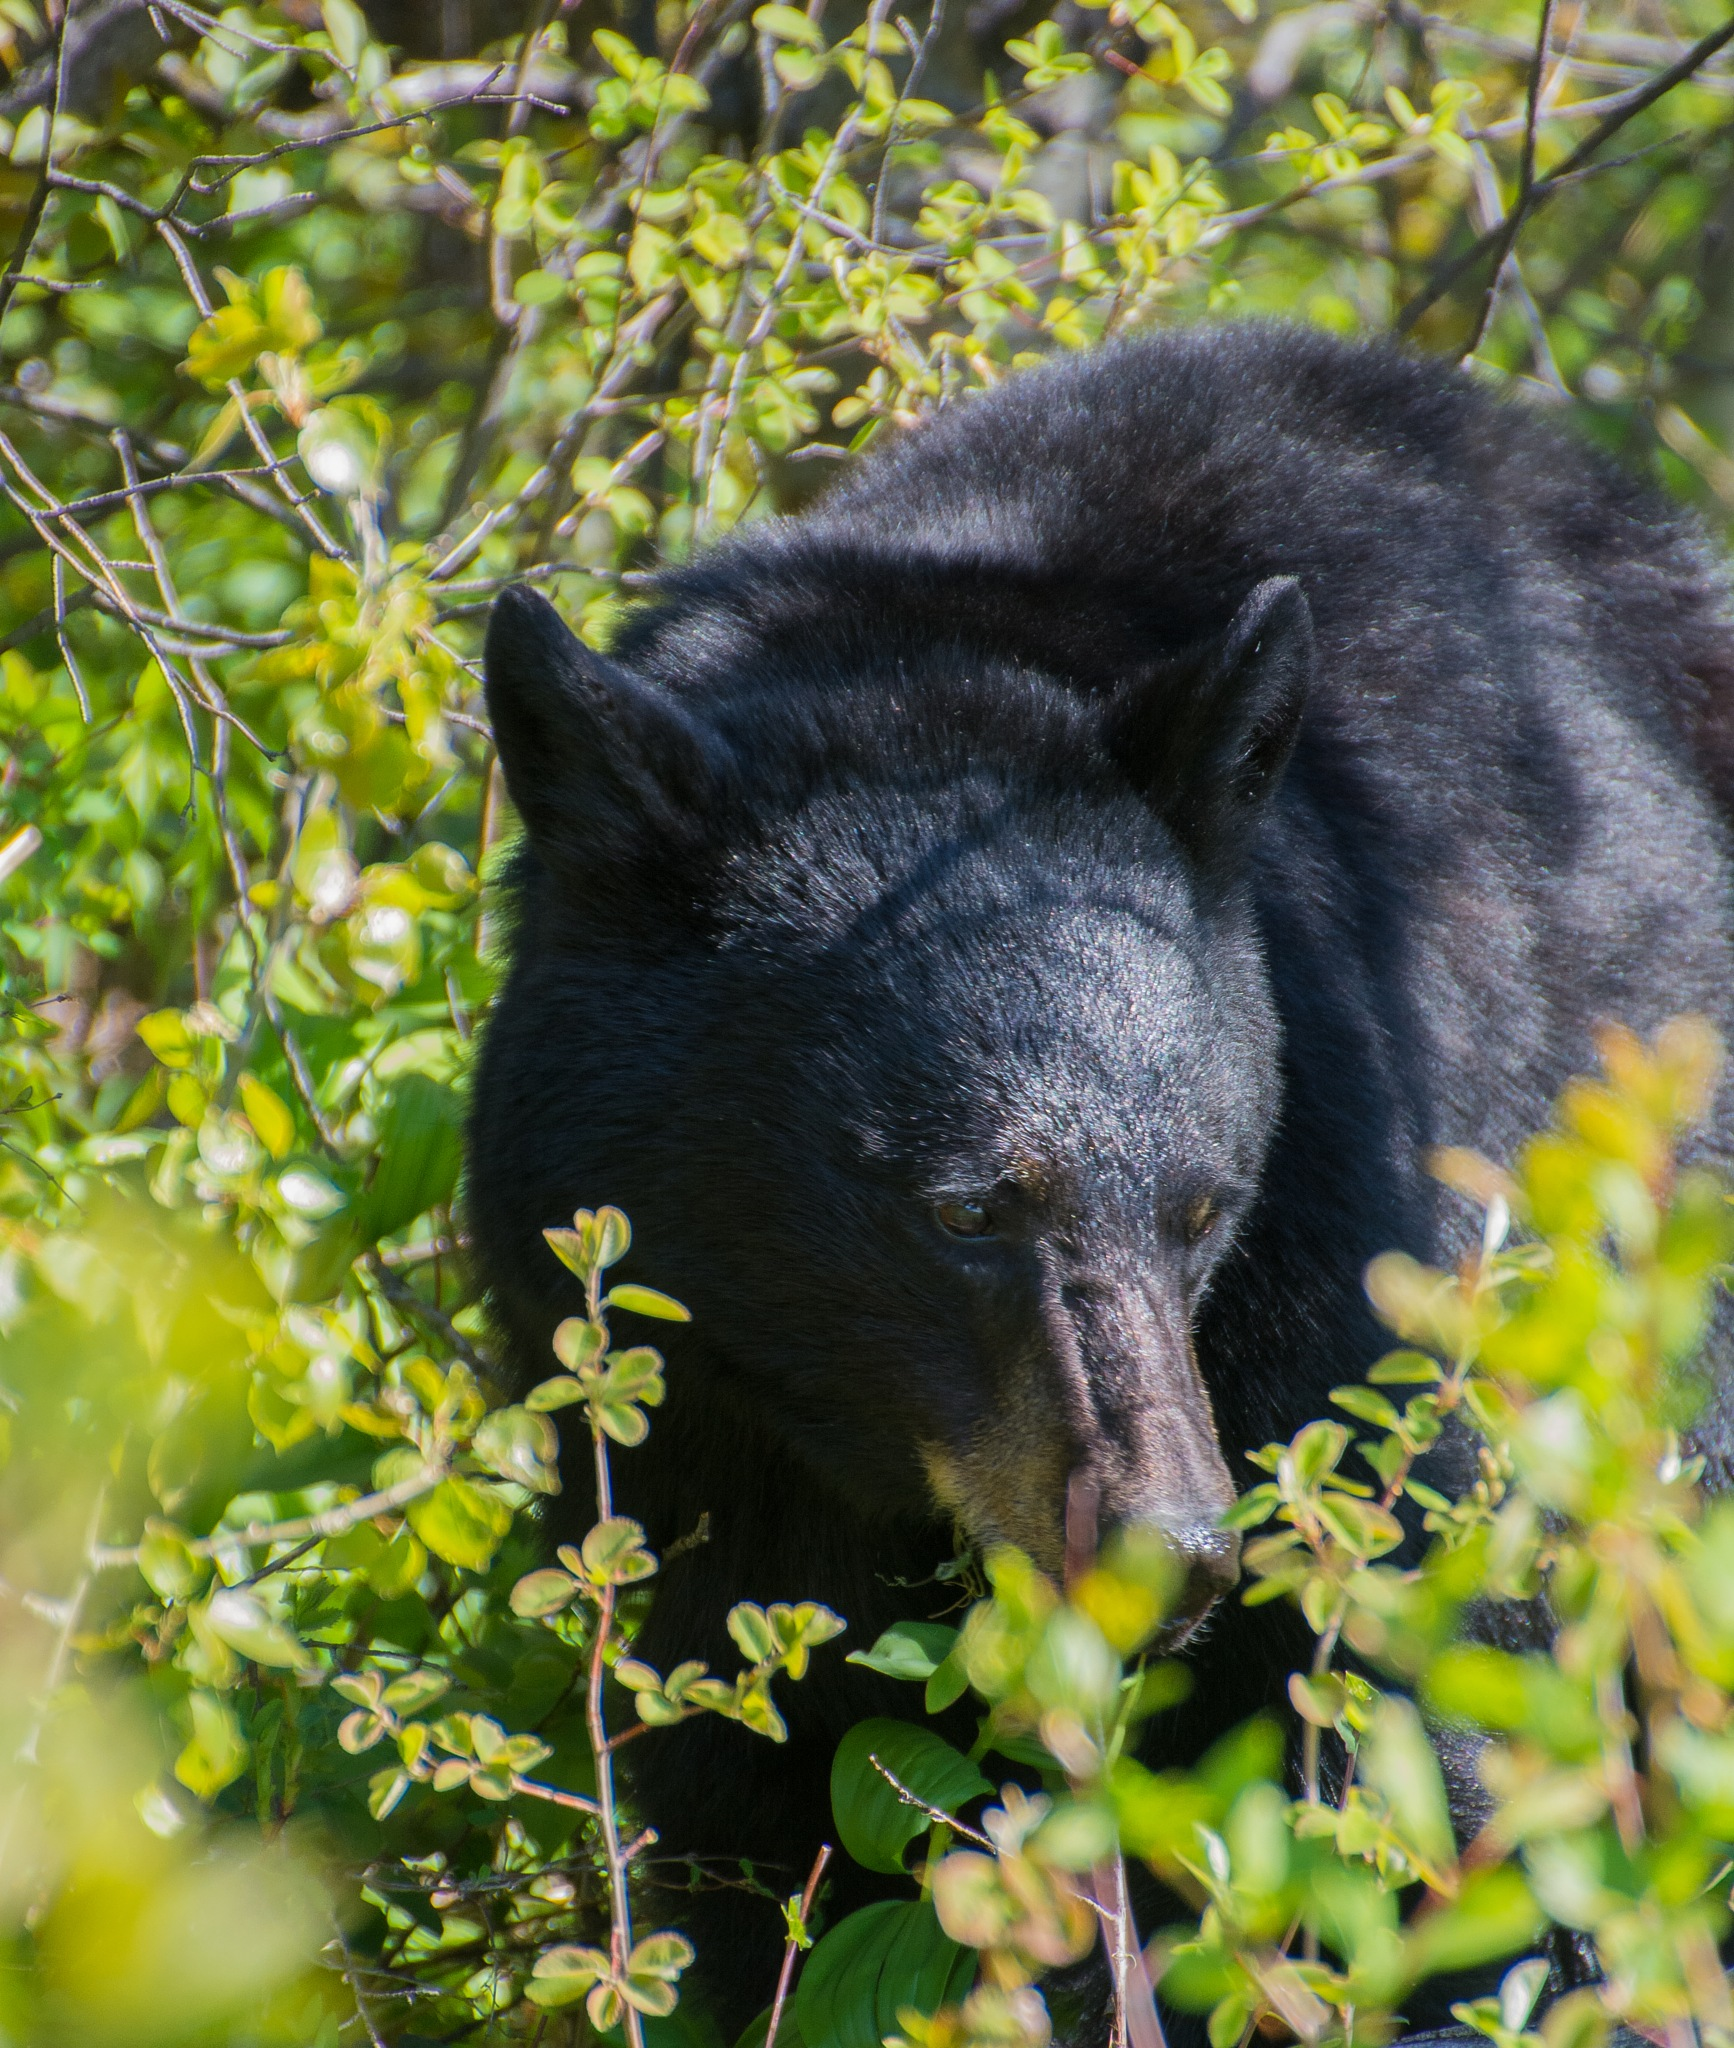 Black bear 3 by SteveRedmond